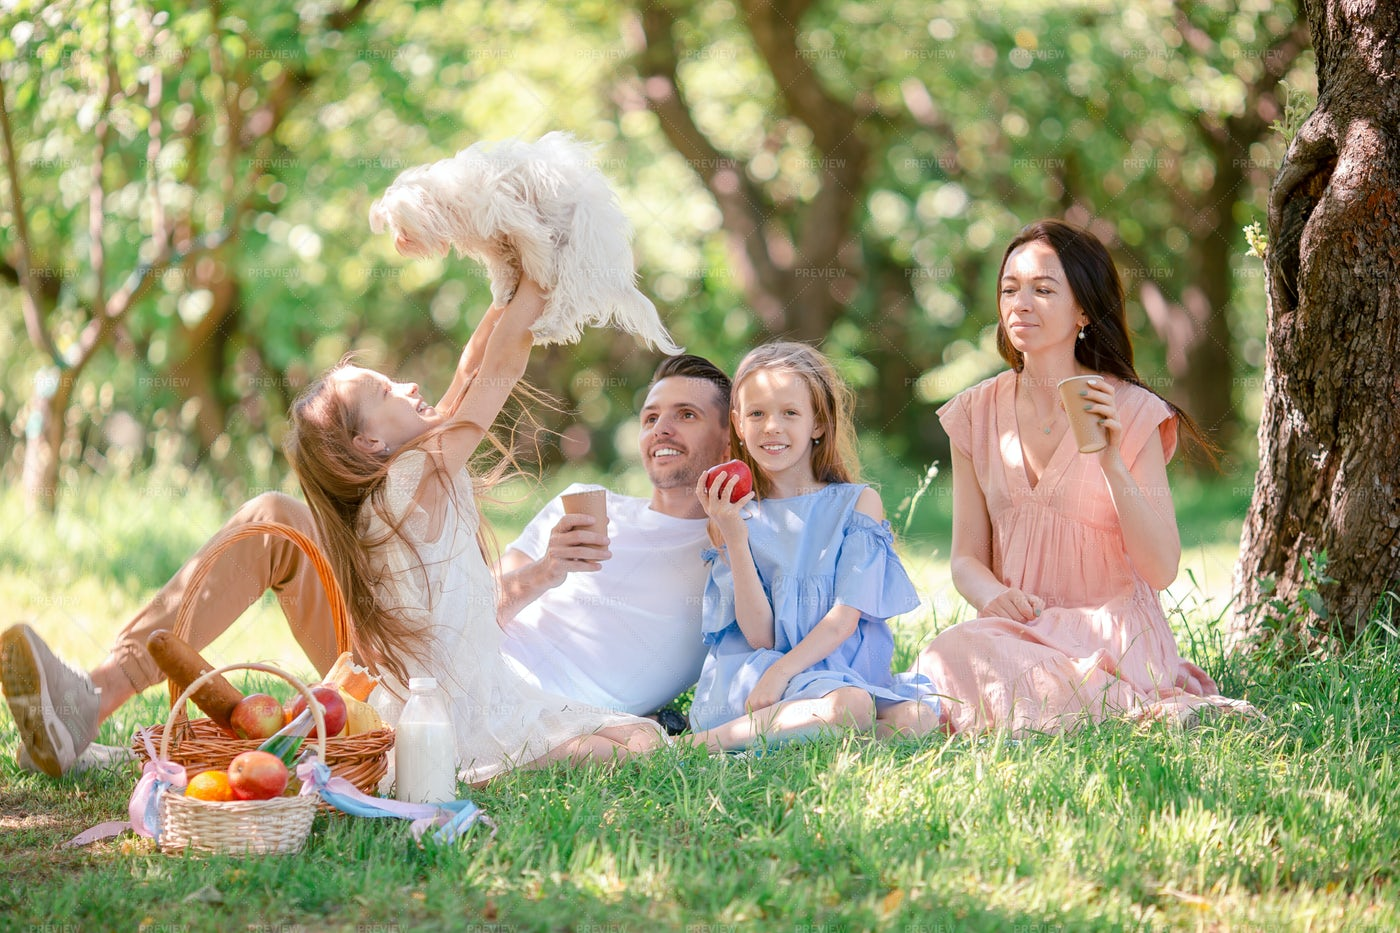 Child Lifts Puppy At Picnic: Stock Photos